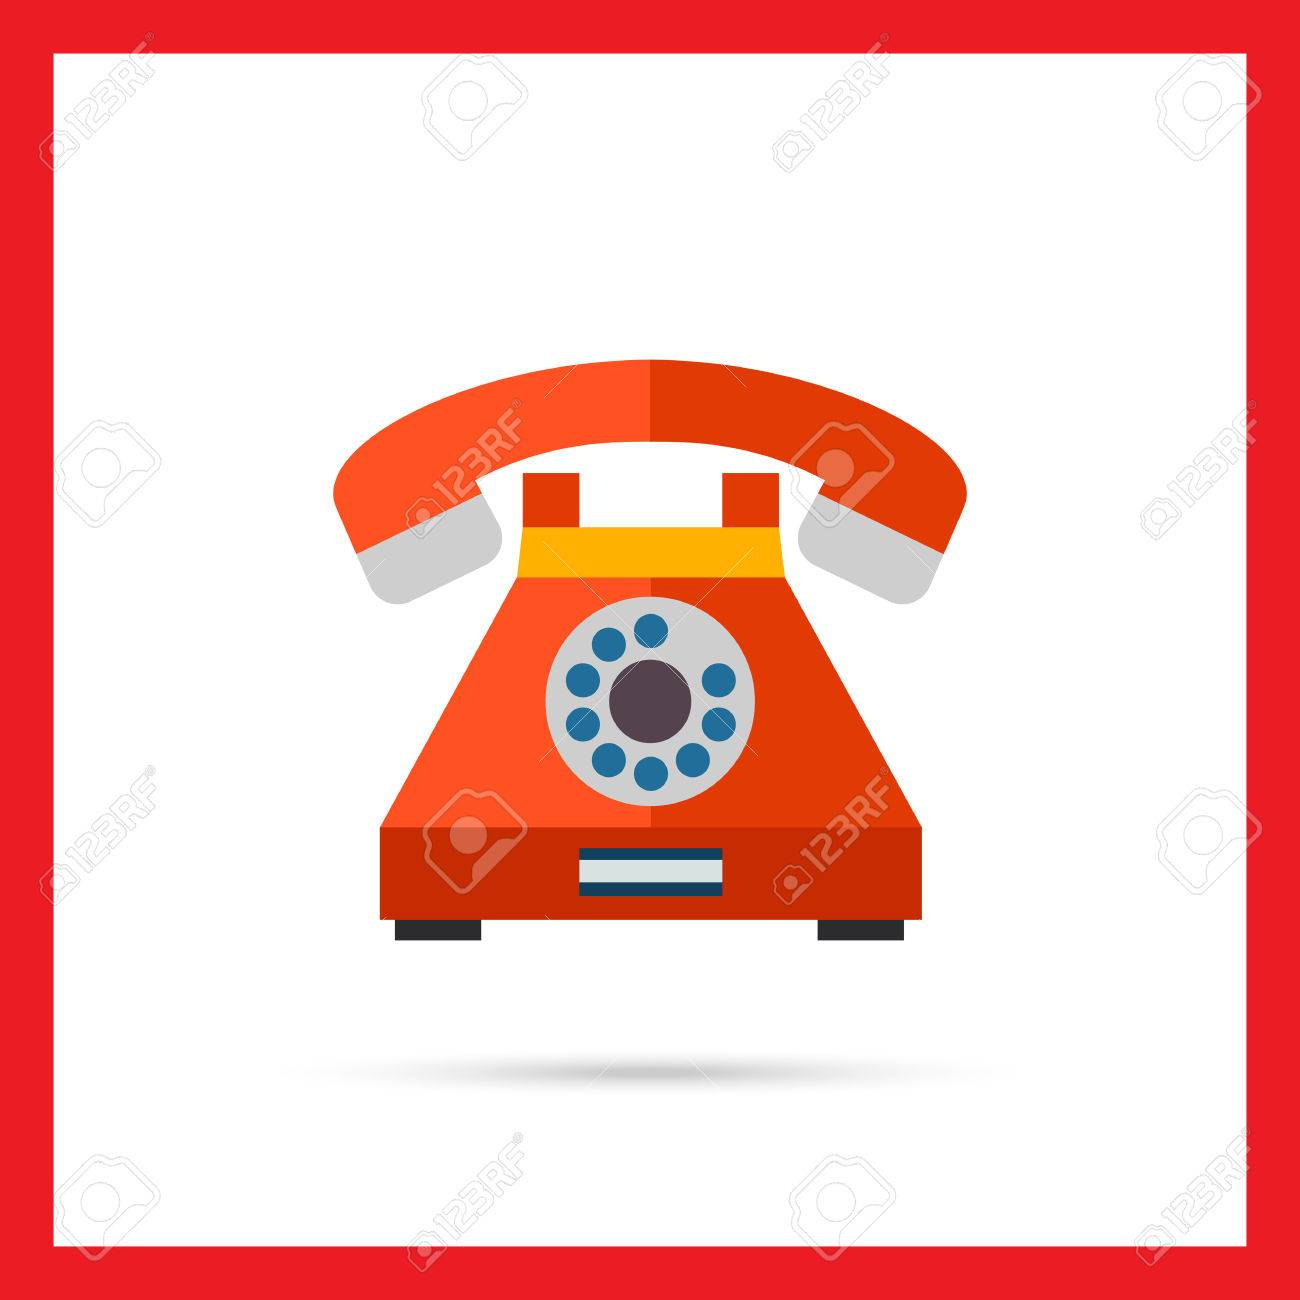 Multicolored vector icon of retro telephone with dialing disk - 53827928